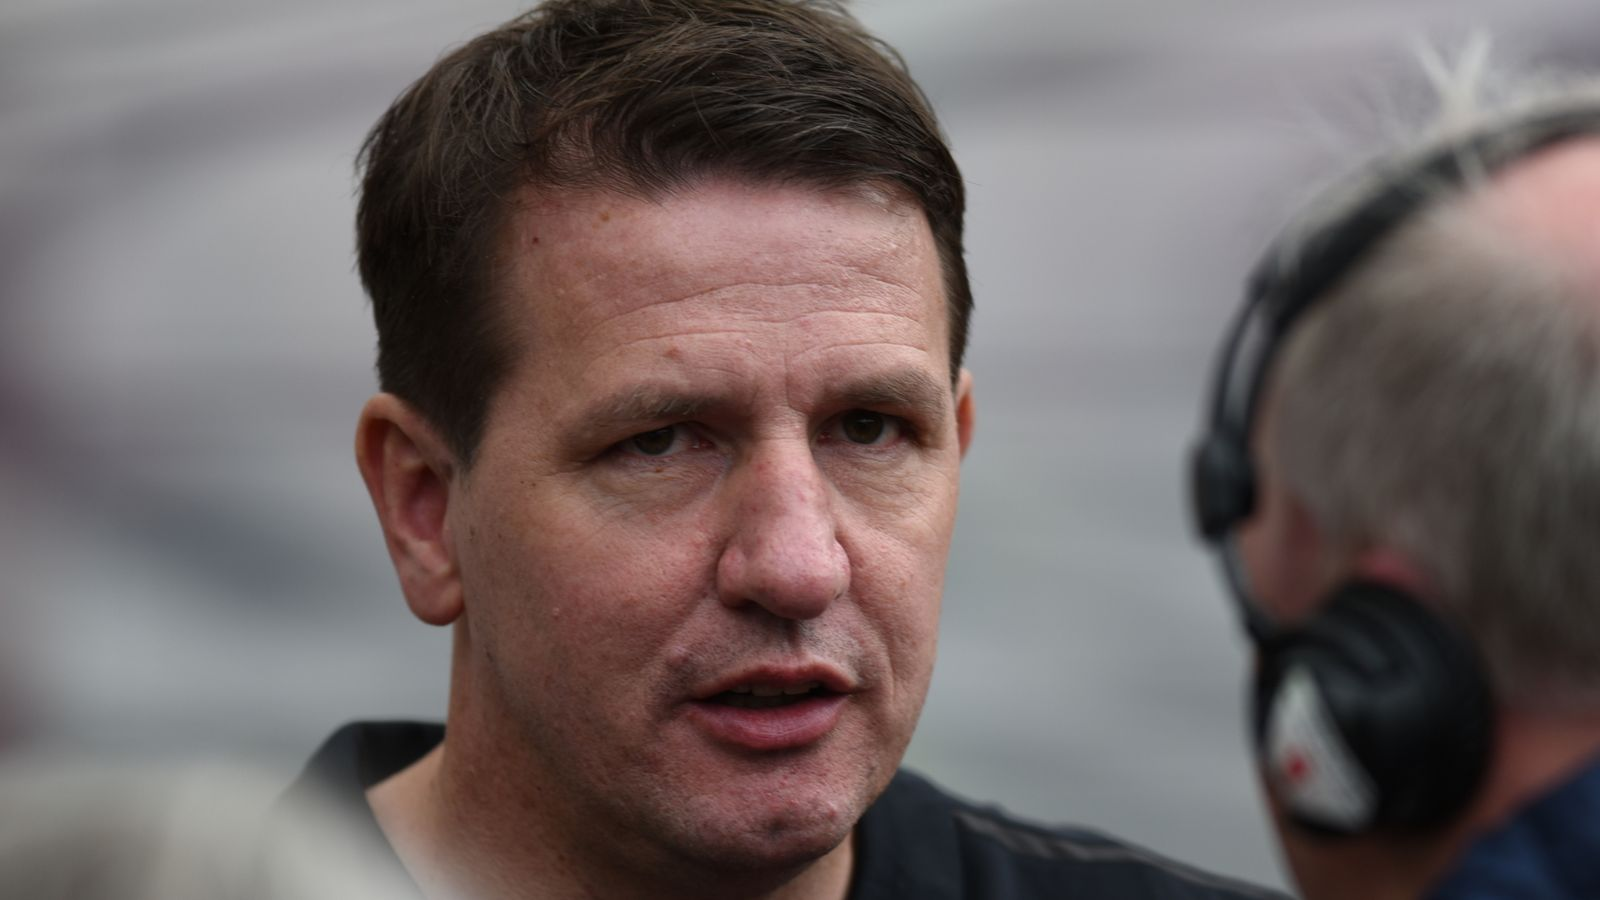 Daniel Stendel asks for compromise in Hearts pay-cut stand-off between players and owner